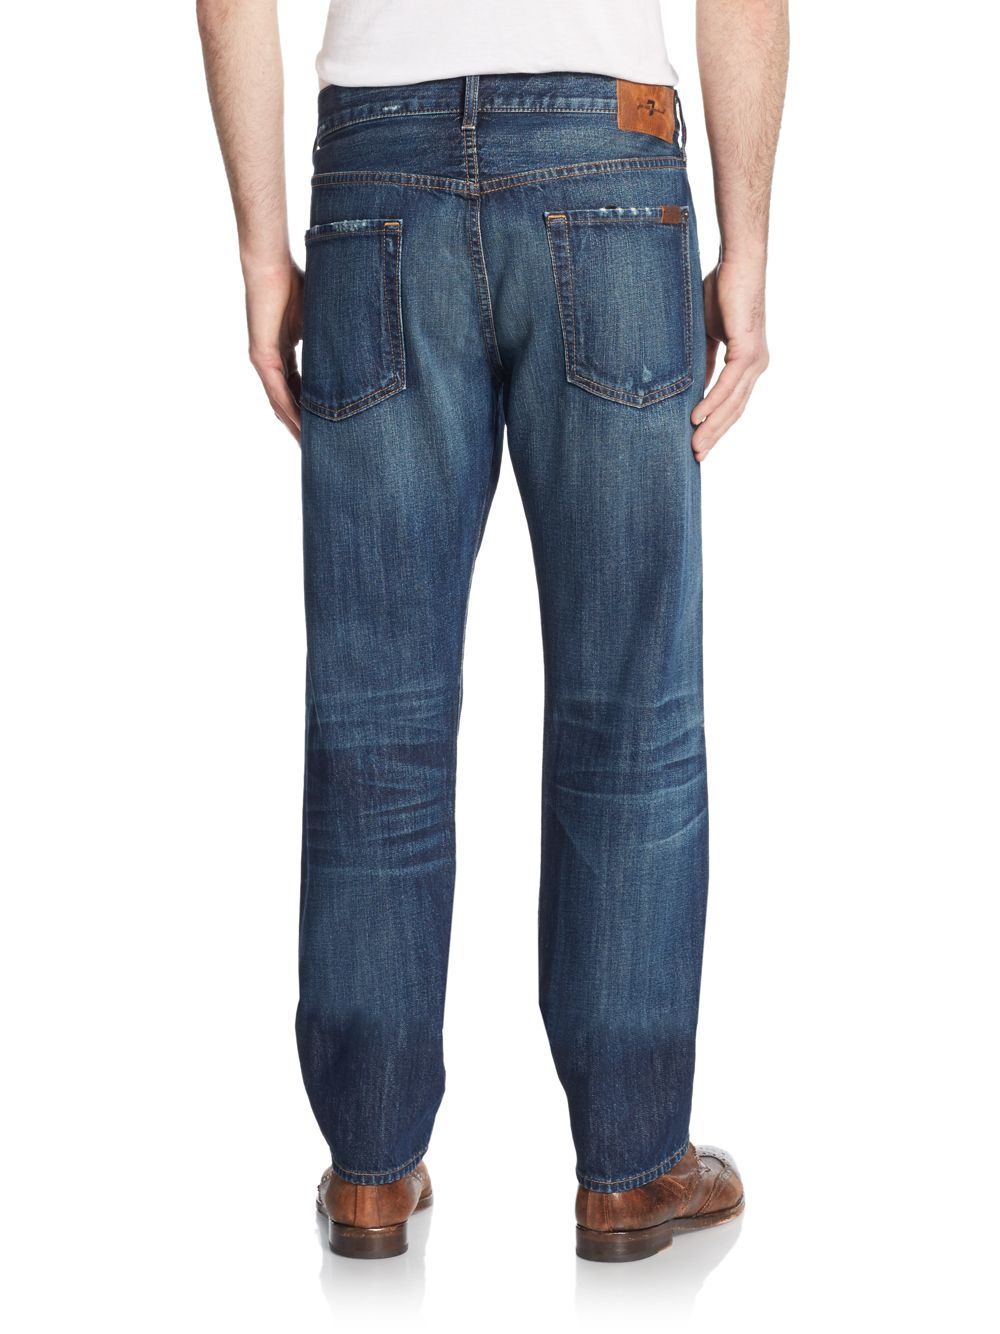 7 for all mankind distressed tapered straight leg jeans in blue for men lyst. Black Bedroom Furniture Sets. Home Design Ideas